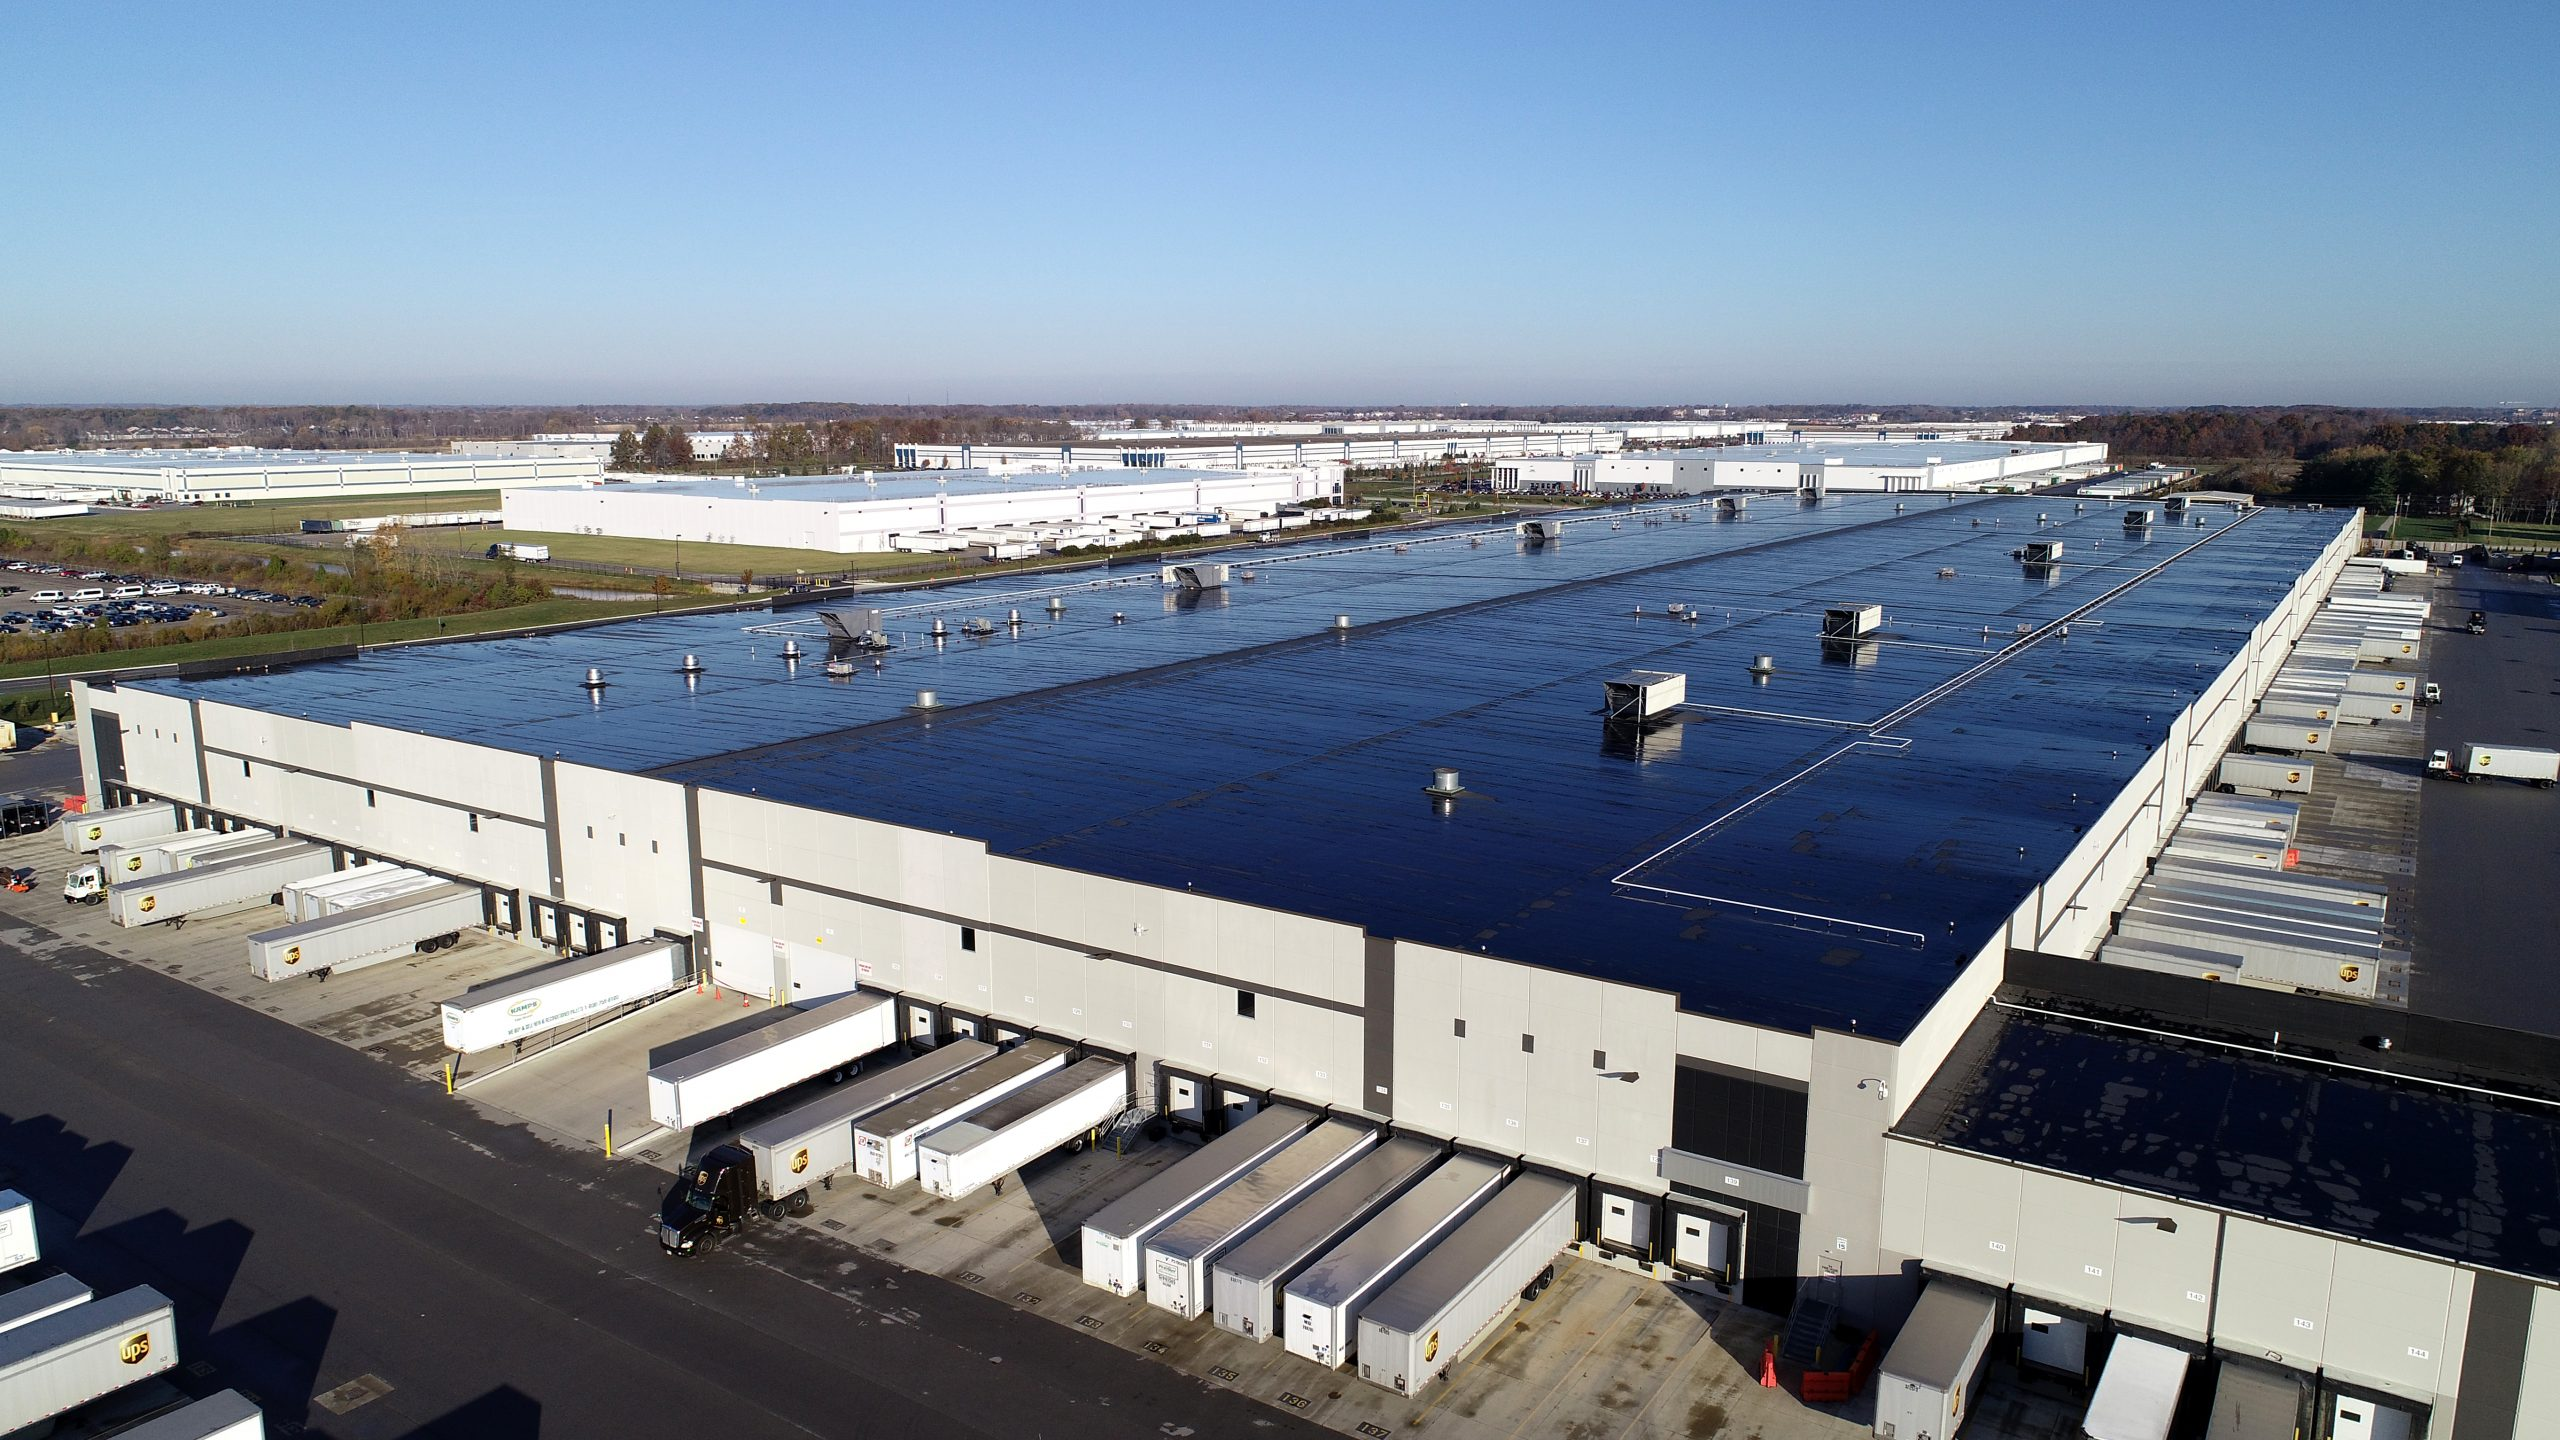 ups commercial roofing project by ce reeve roofing in indianapolis